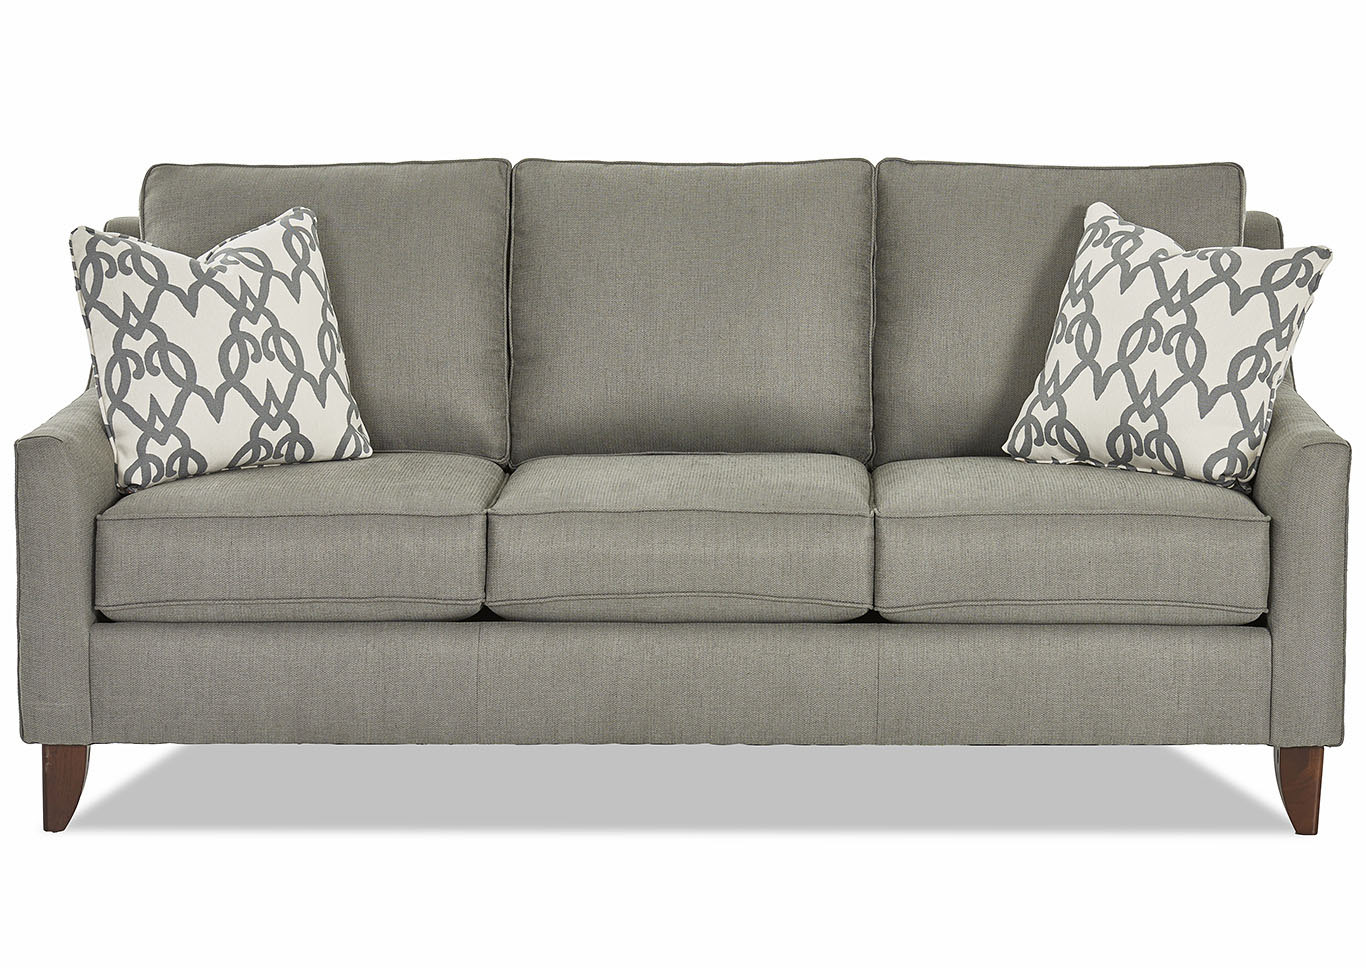 Belton Smoke Stationary Fabric Sofa,Klaussner Home Furnishings